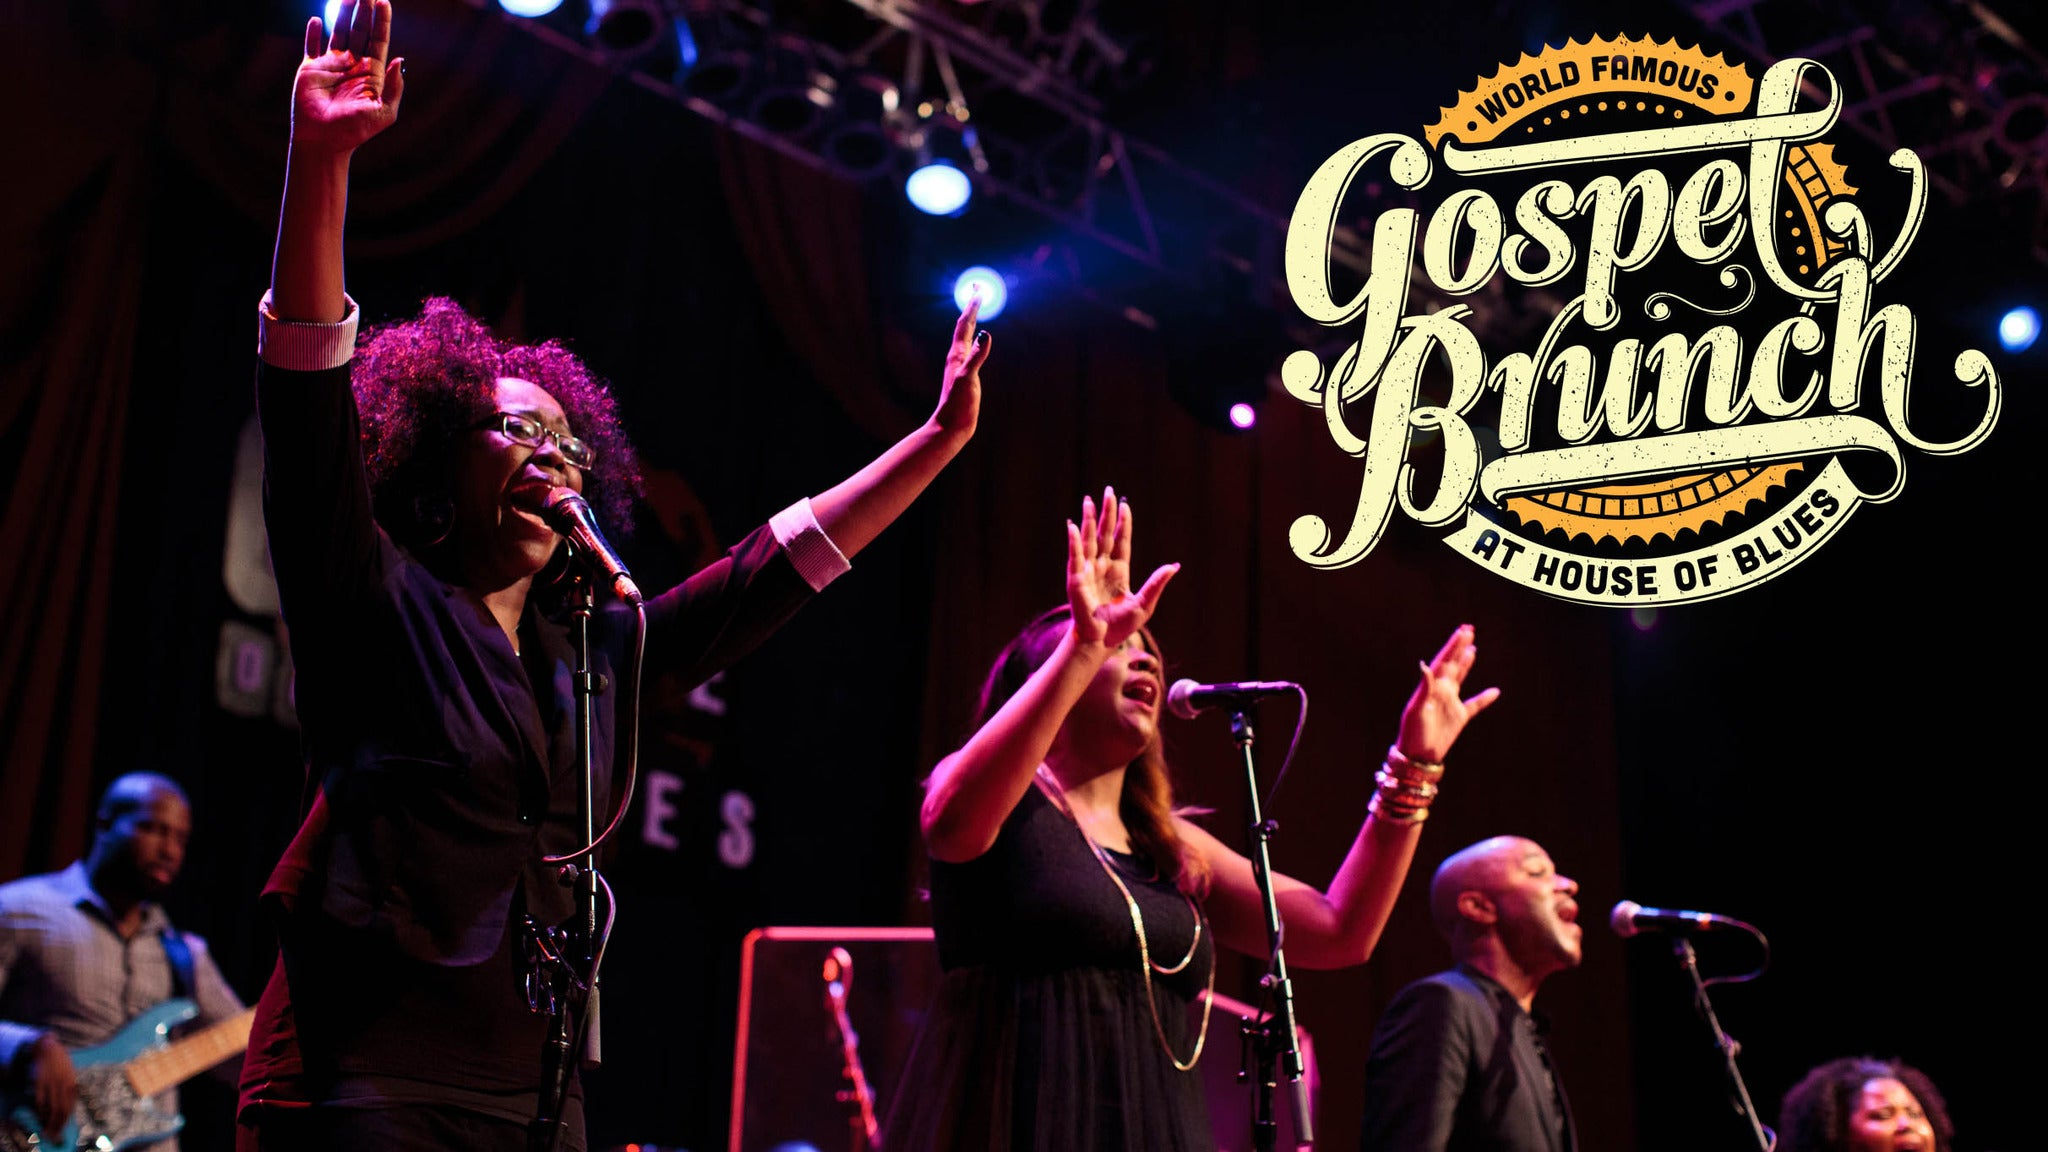 House of Blues Gospel Brunch at House of Blues Orlando